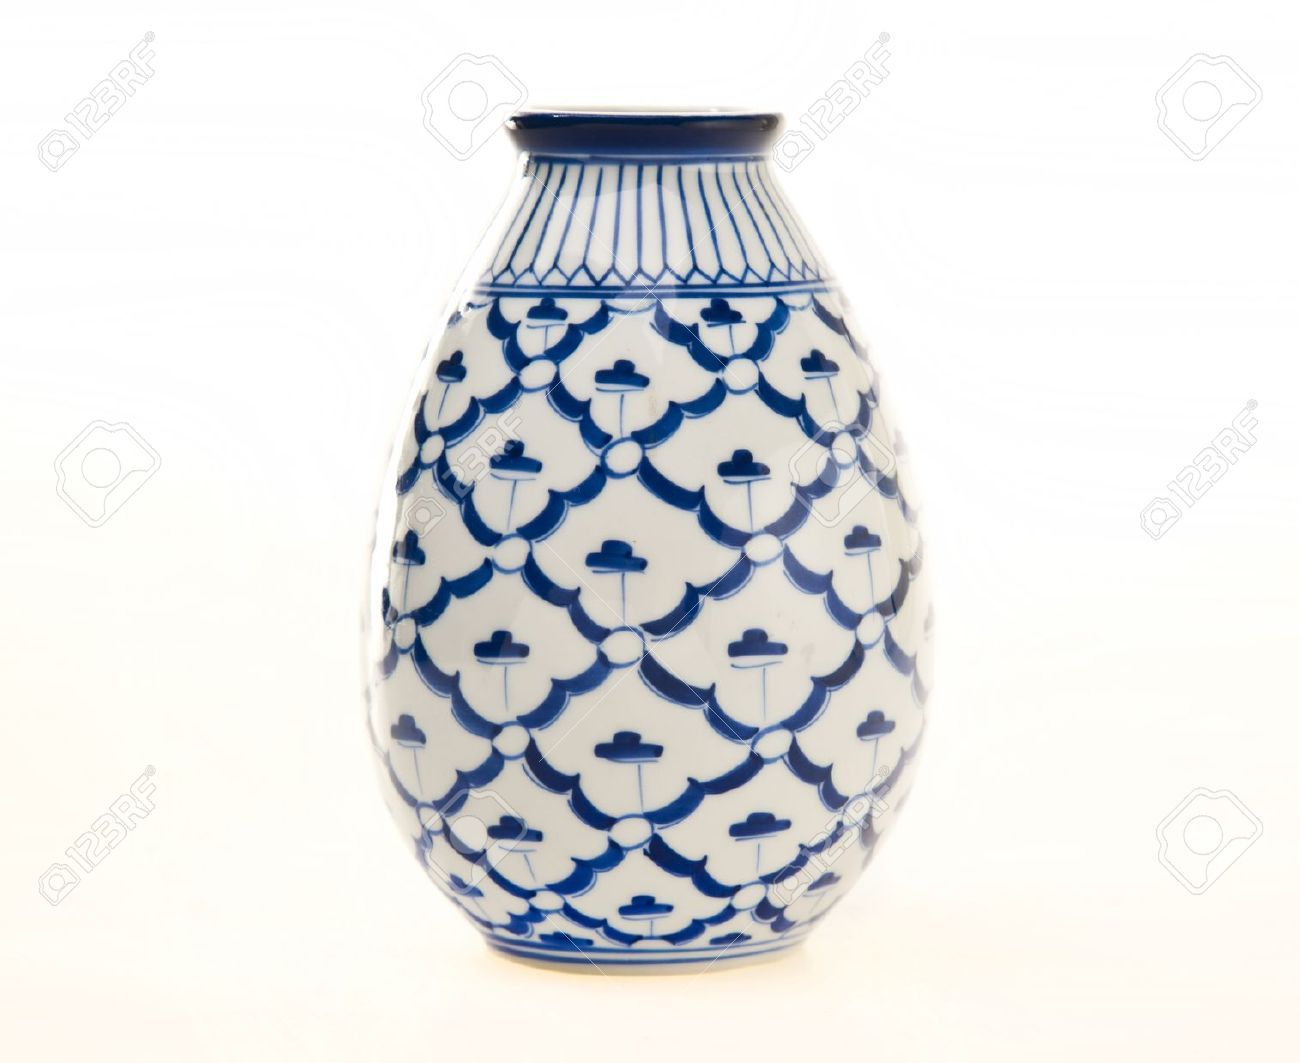 11701199 blue and white pottery vase stock photo chineseg 1300 11701199 blue and white pottery vase stock photo reviewsmspy